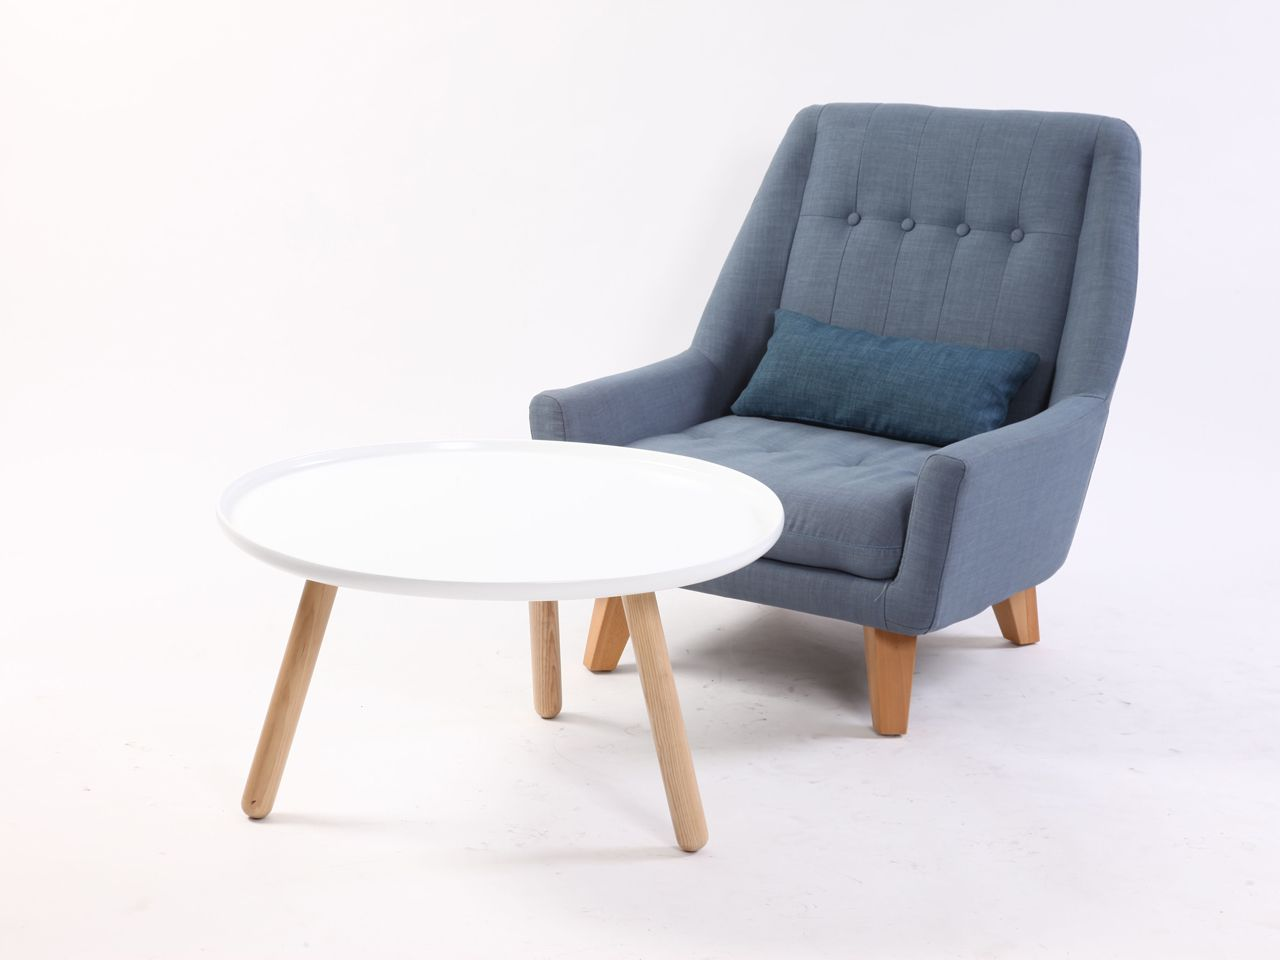 Lucy Coffee Table Comfort Design The Chair Amp Table